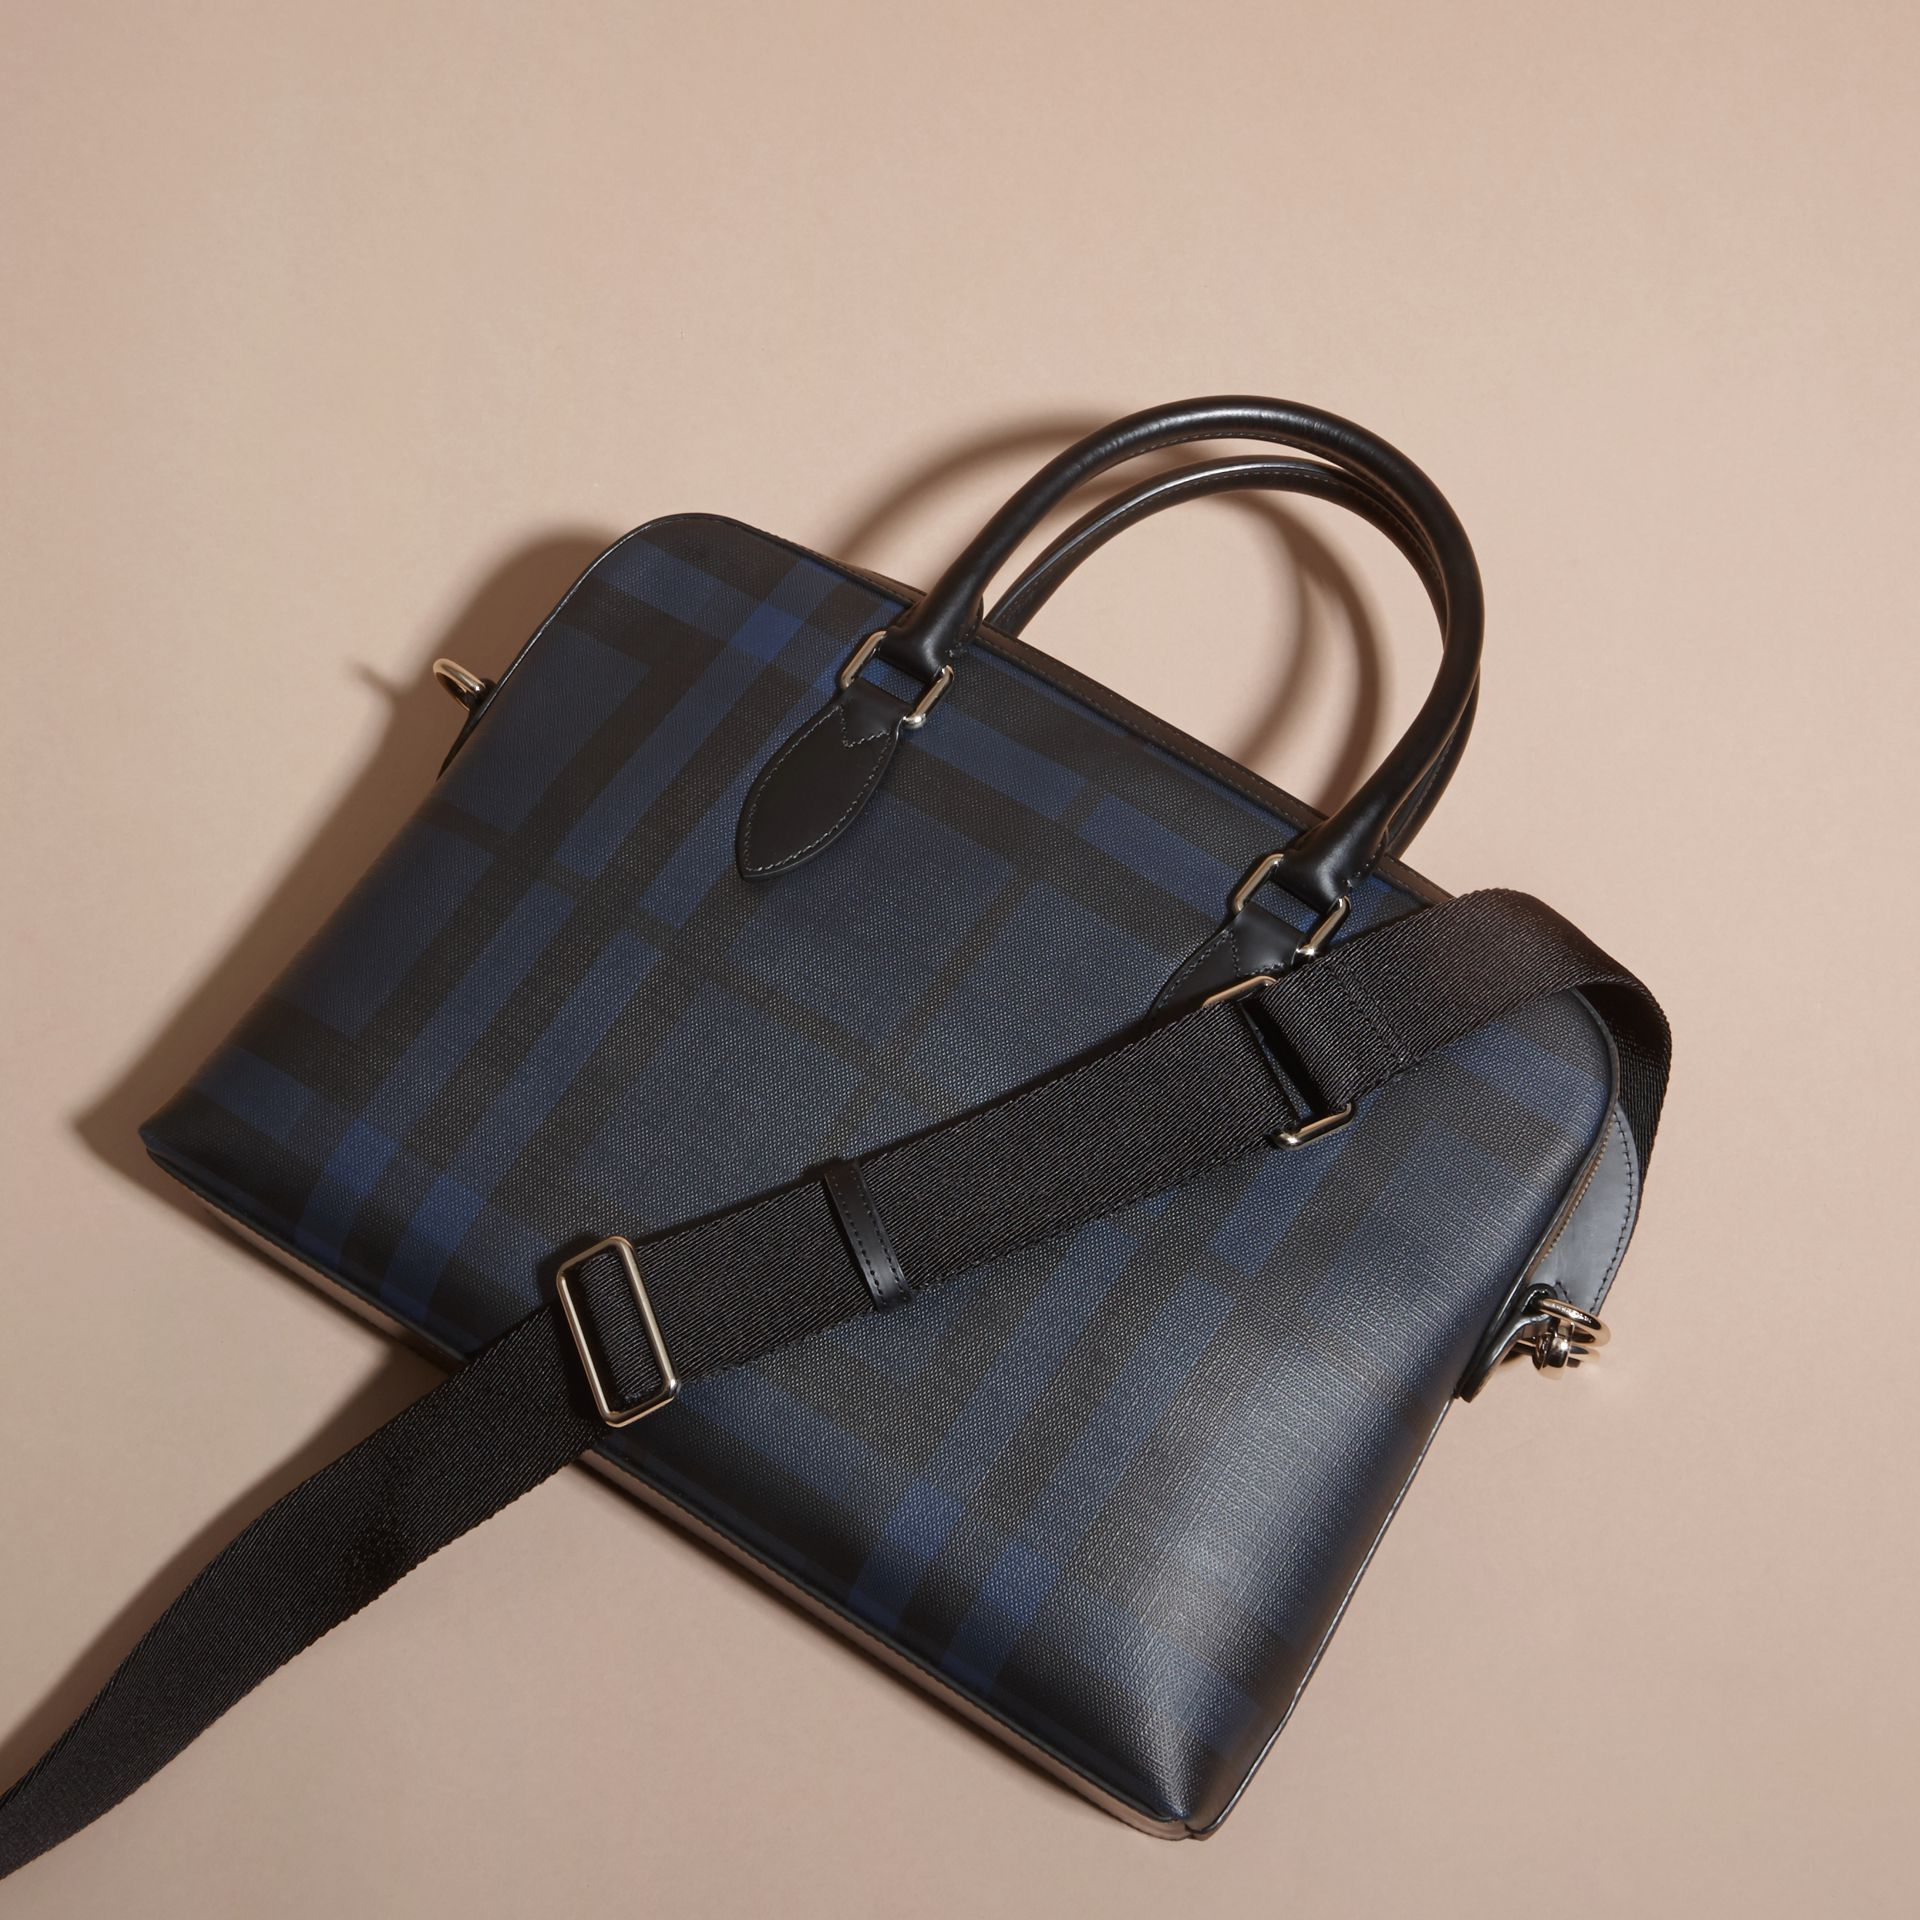 Sac The Barrow fin avec motif London check (Marine/noir) - photo de la galerie 5